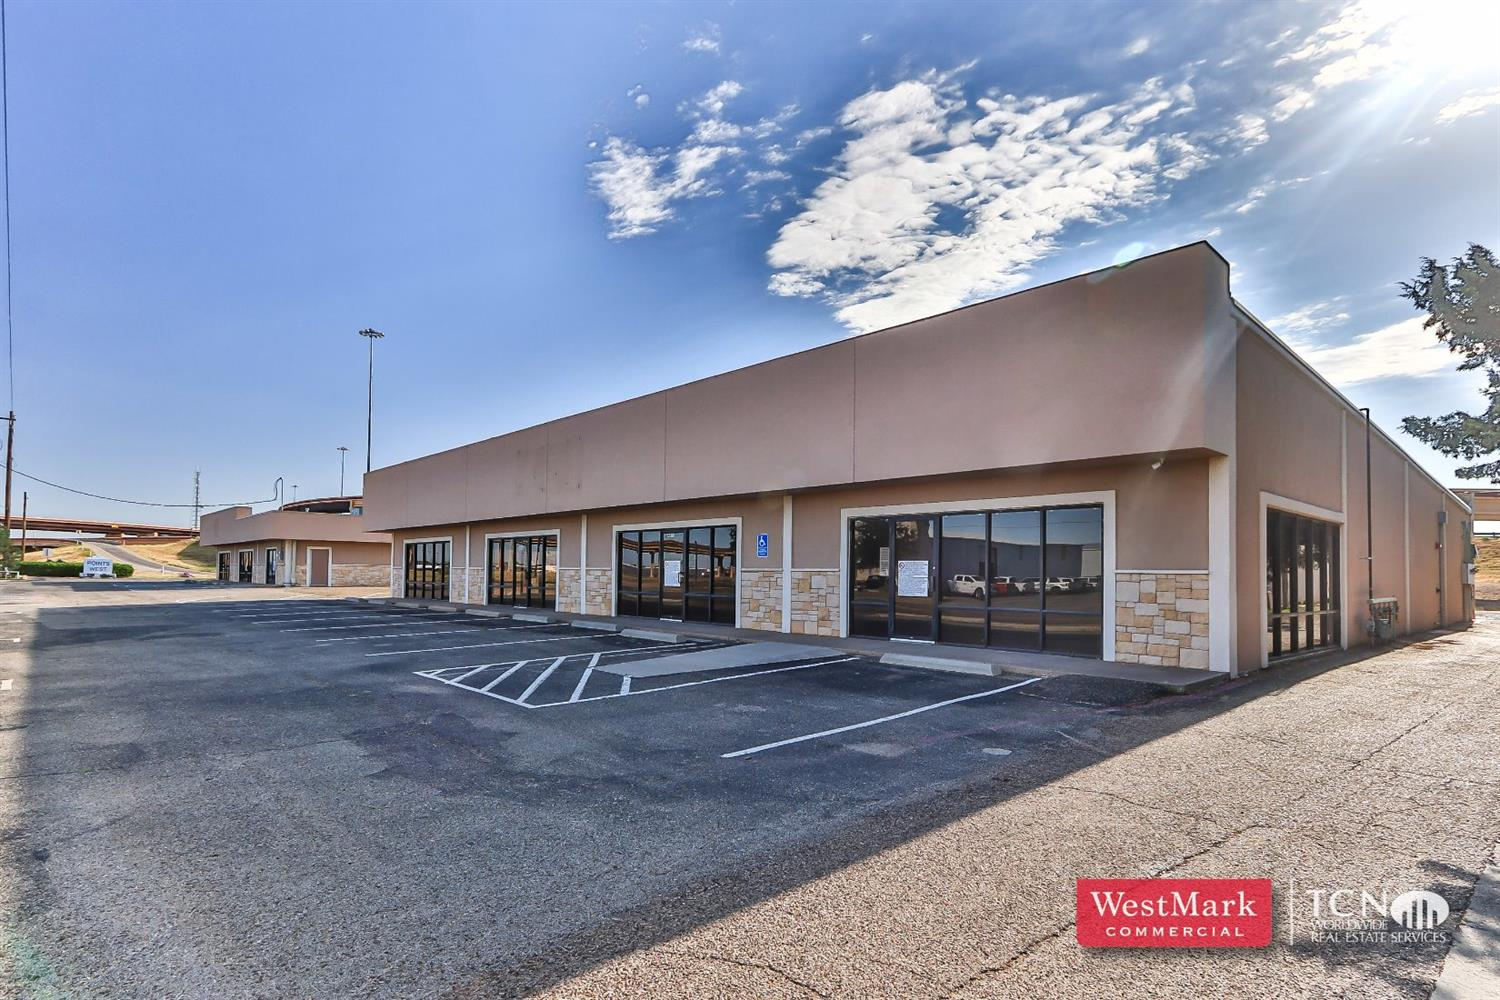 Great location with Loop 289 frontage with 50th street access. Two buildings on the lot 8,000 SF and 3,000 SF. Open concept that can be used as retail or office space.